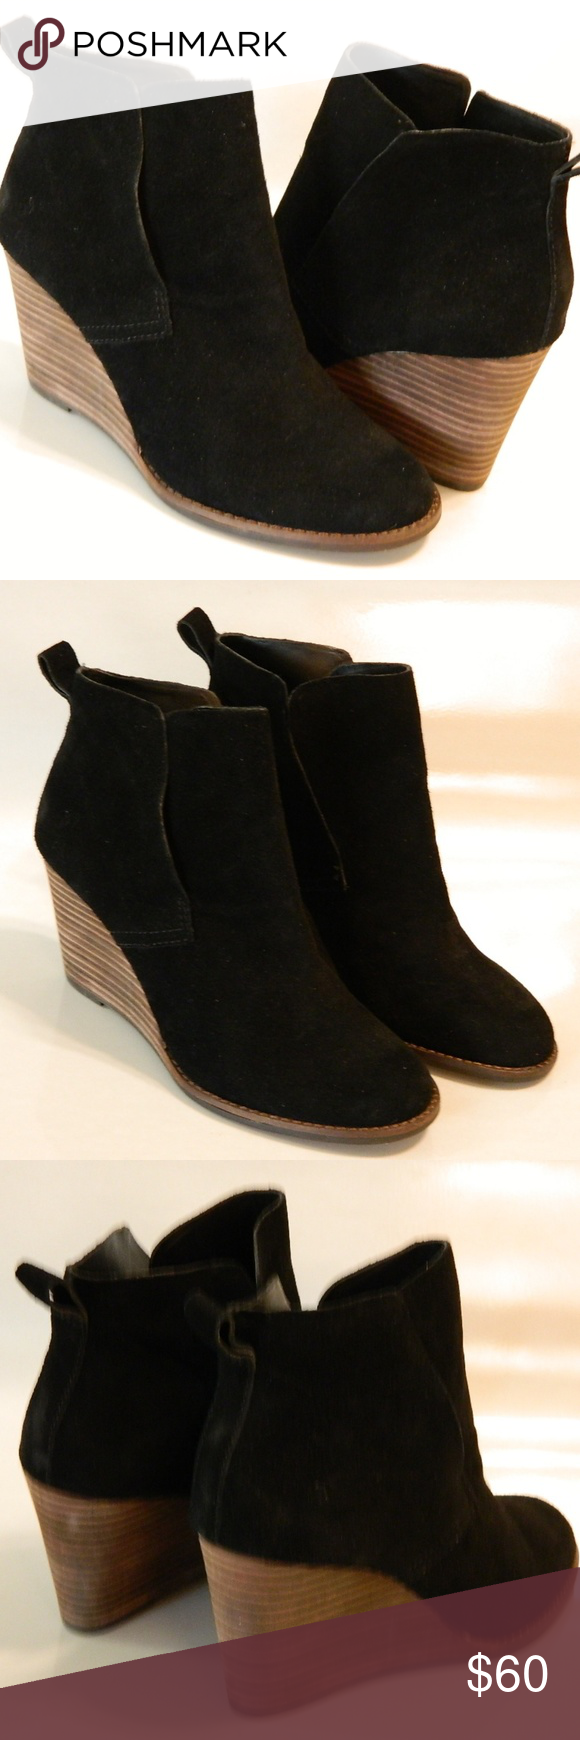 bd8b711a3cab LUCKY BRAND Yoniana Wedge Booties Black Sz 7M NEW LUCKY BRAND Yoniana Wedge  Booties Ankle Boots